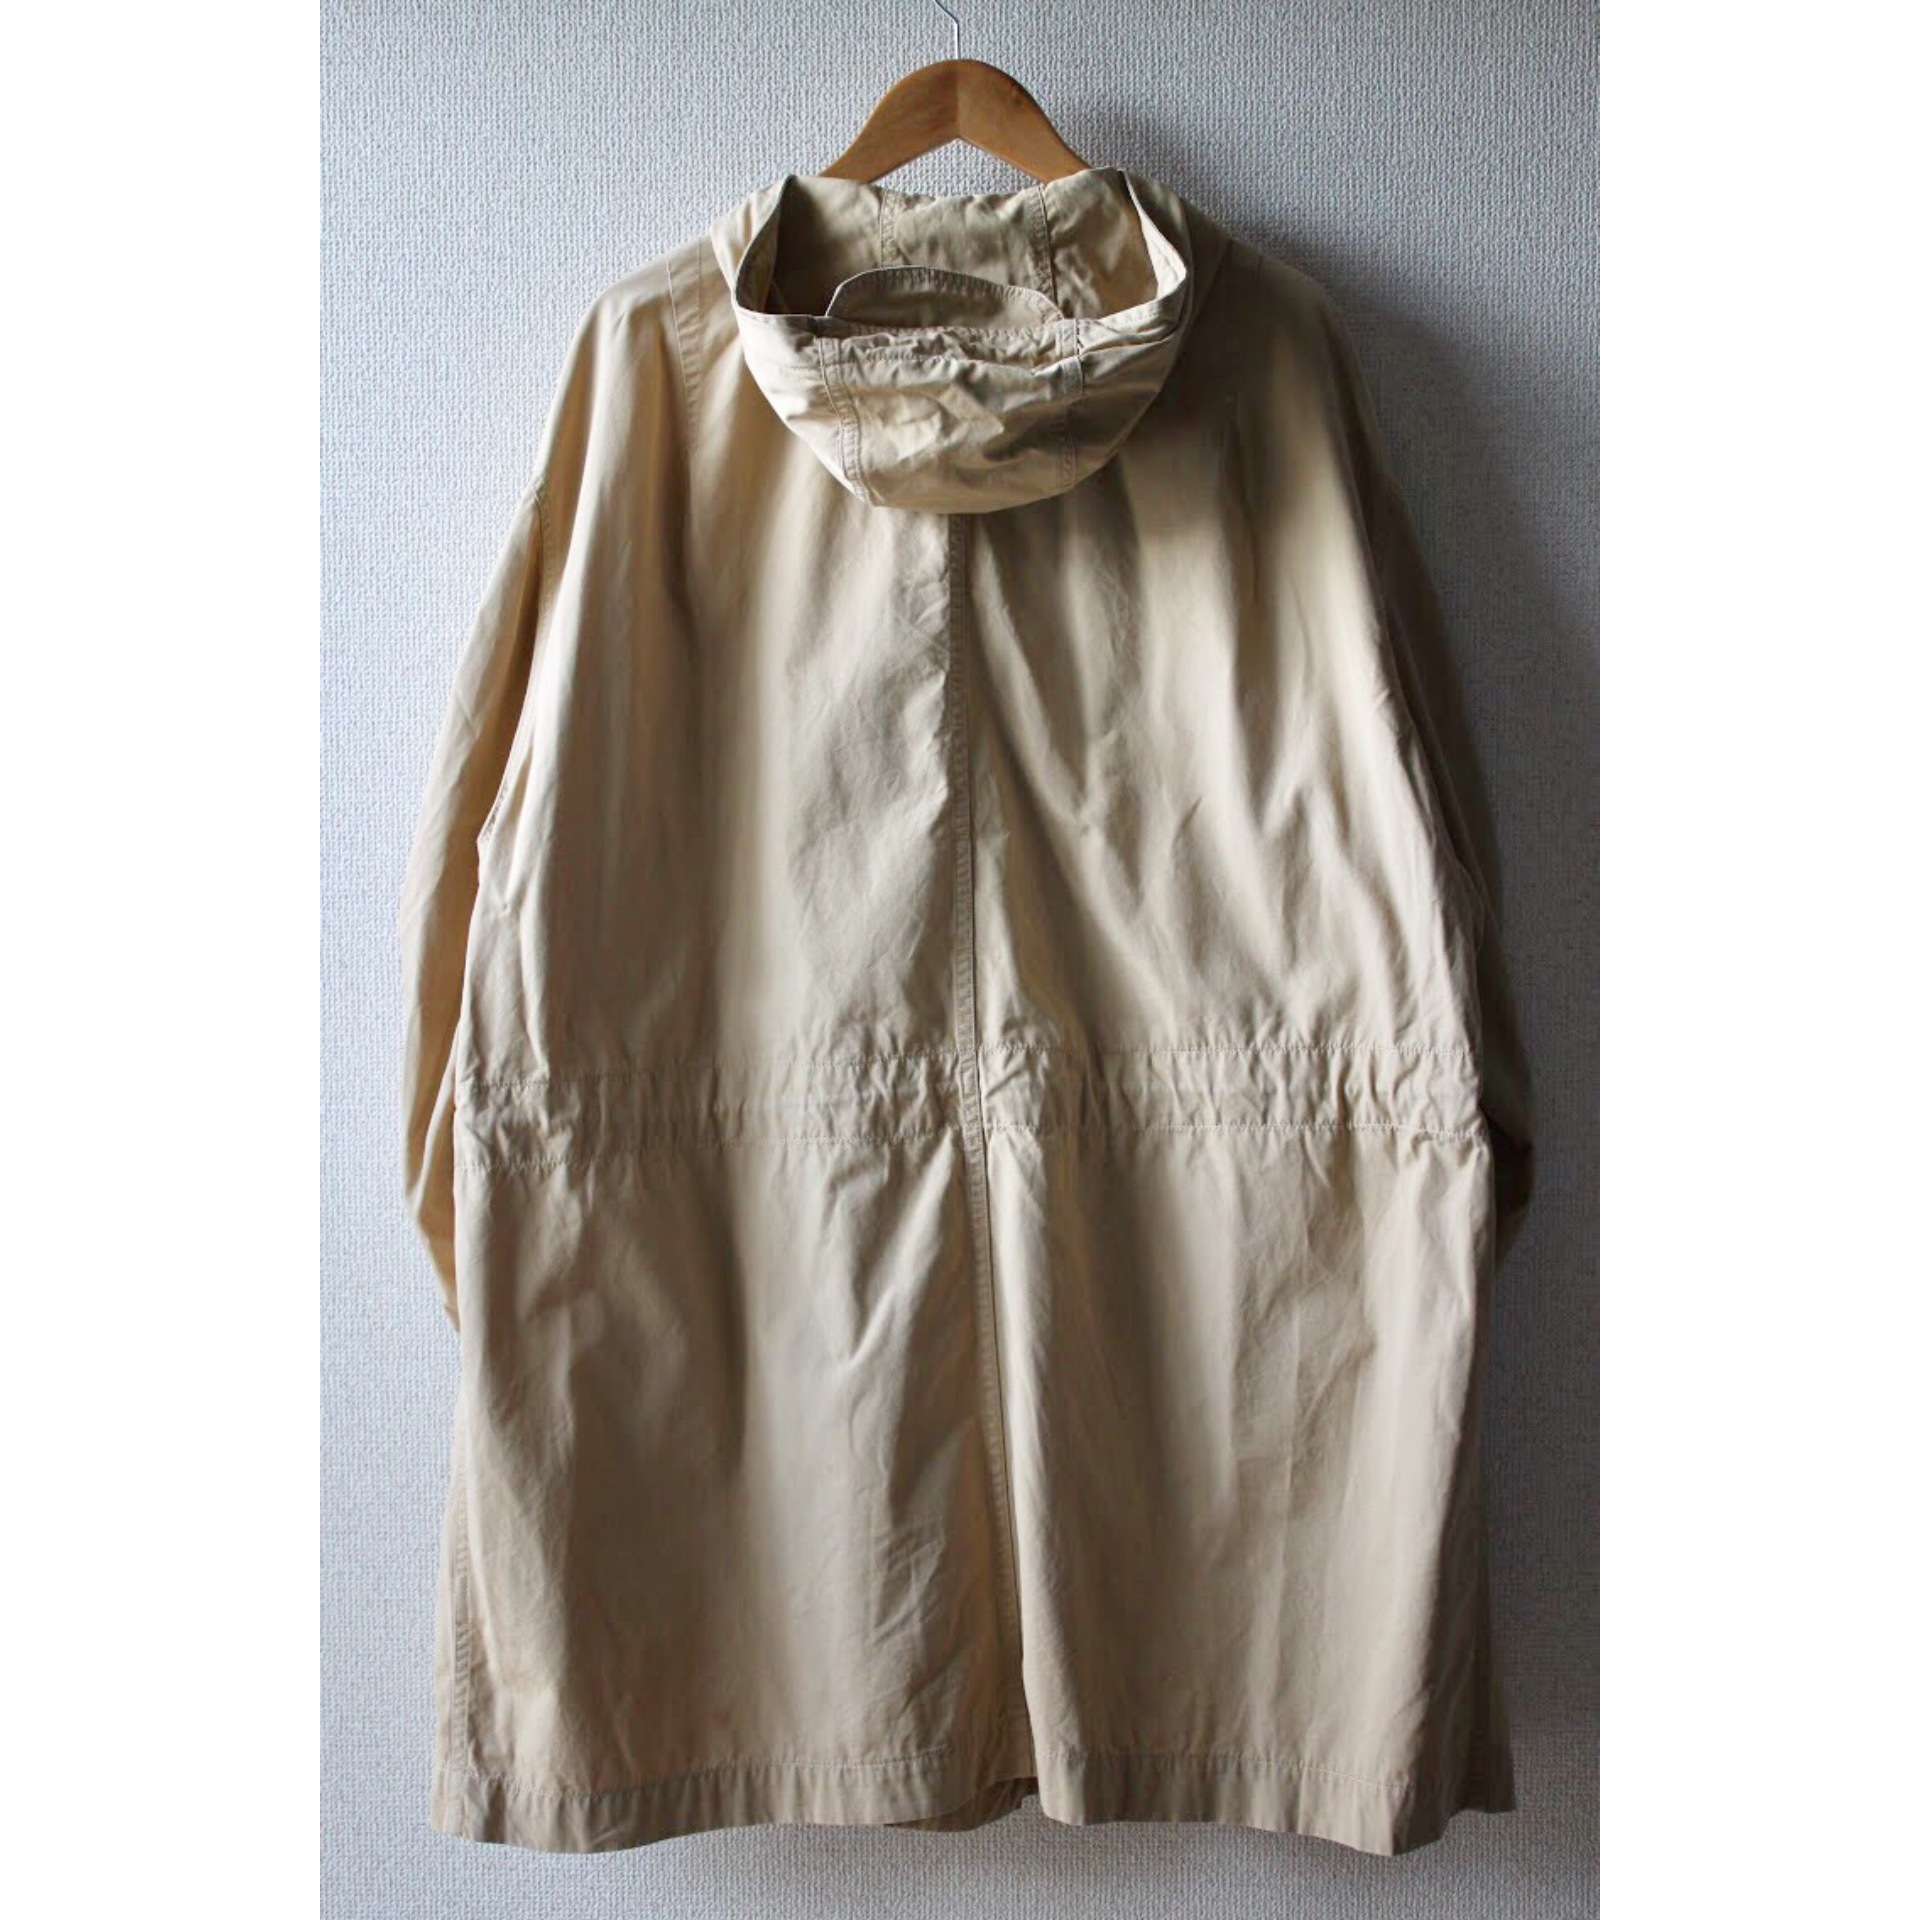 Vintage hooded coat M-51 type by United Colors Of Benetton